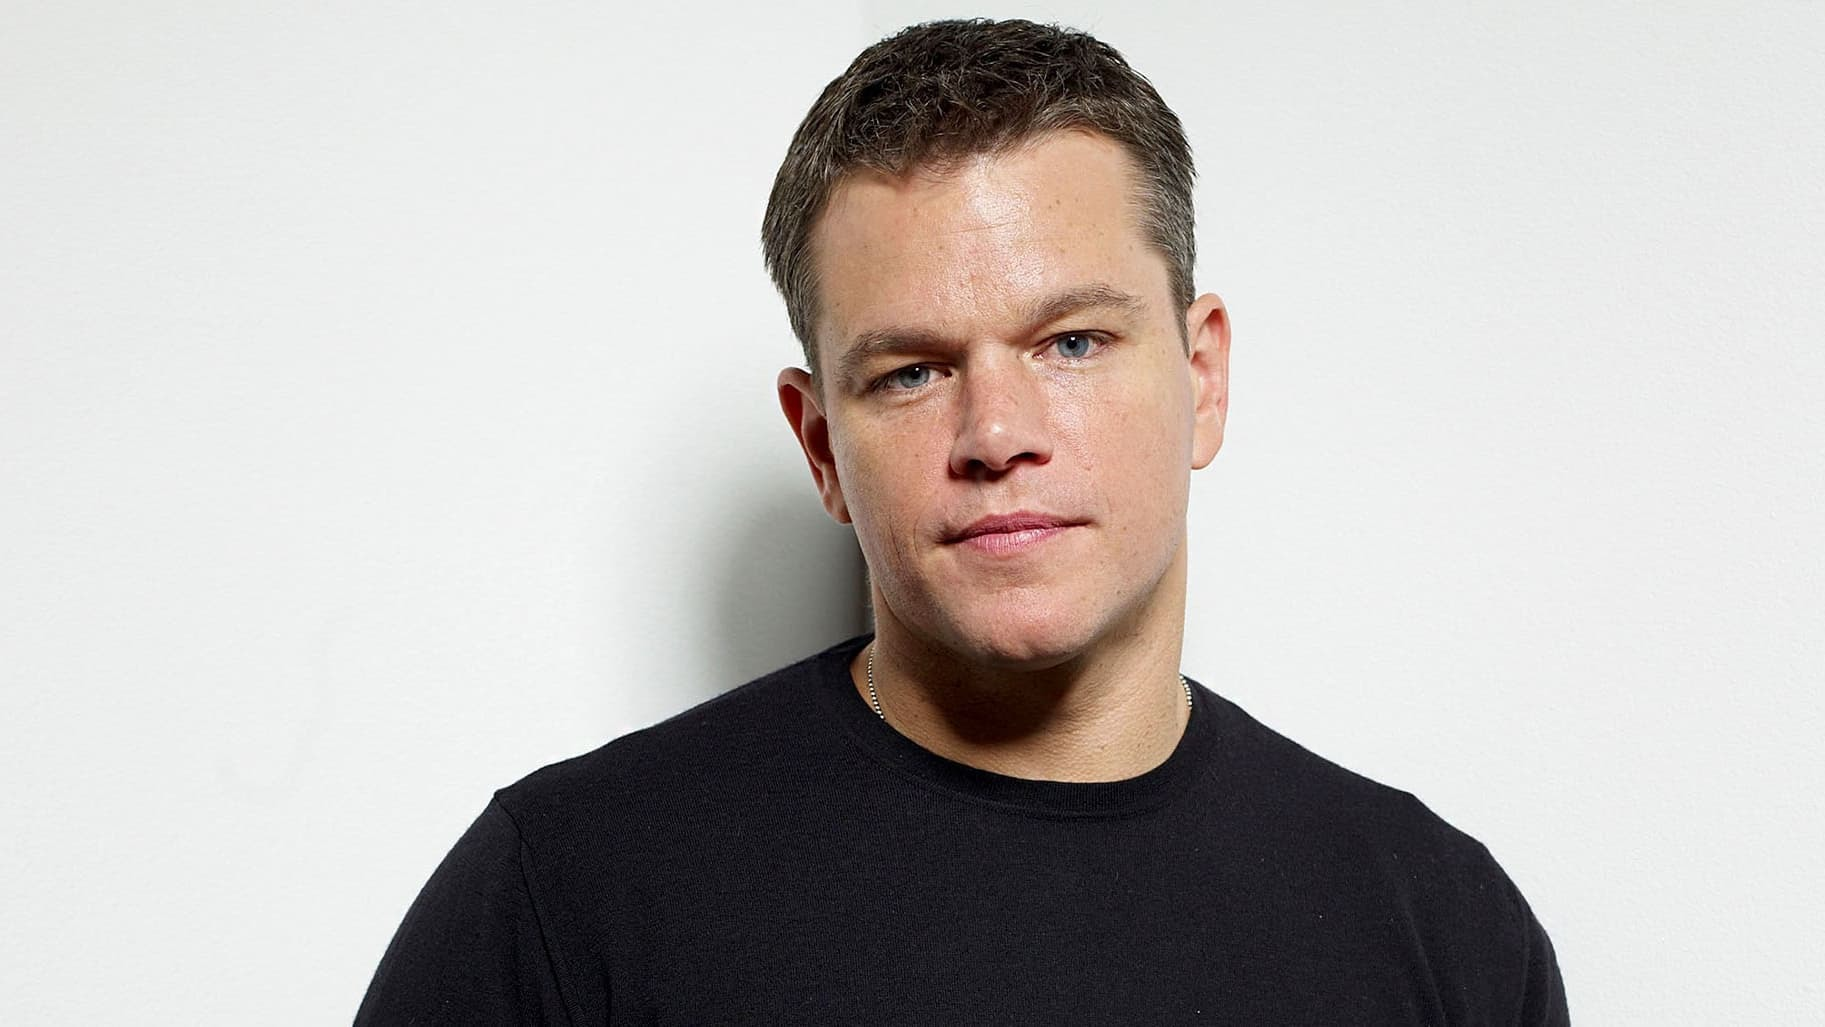 Matt damon wallpapers images photos pictures backgrounds for Matt damon young